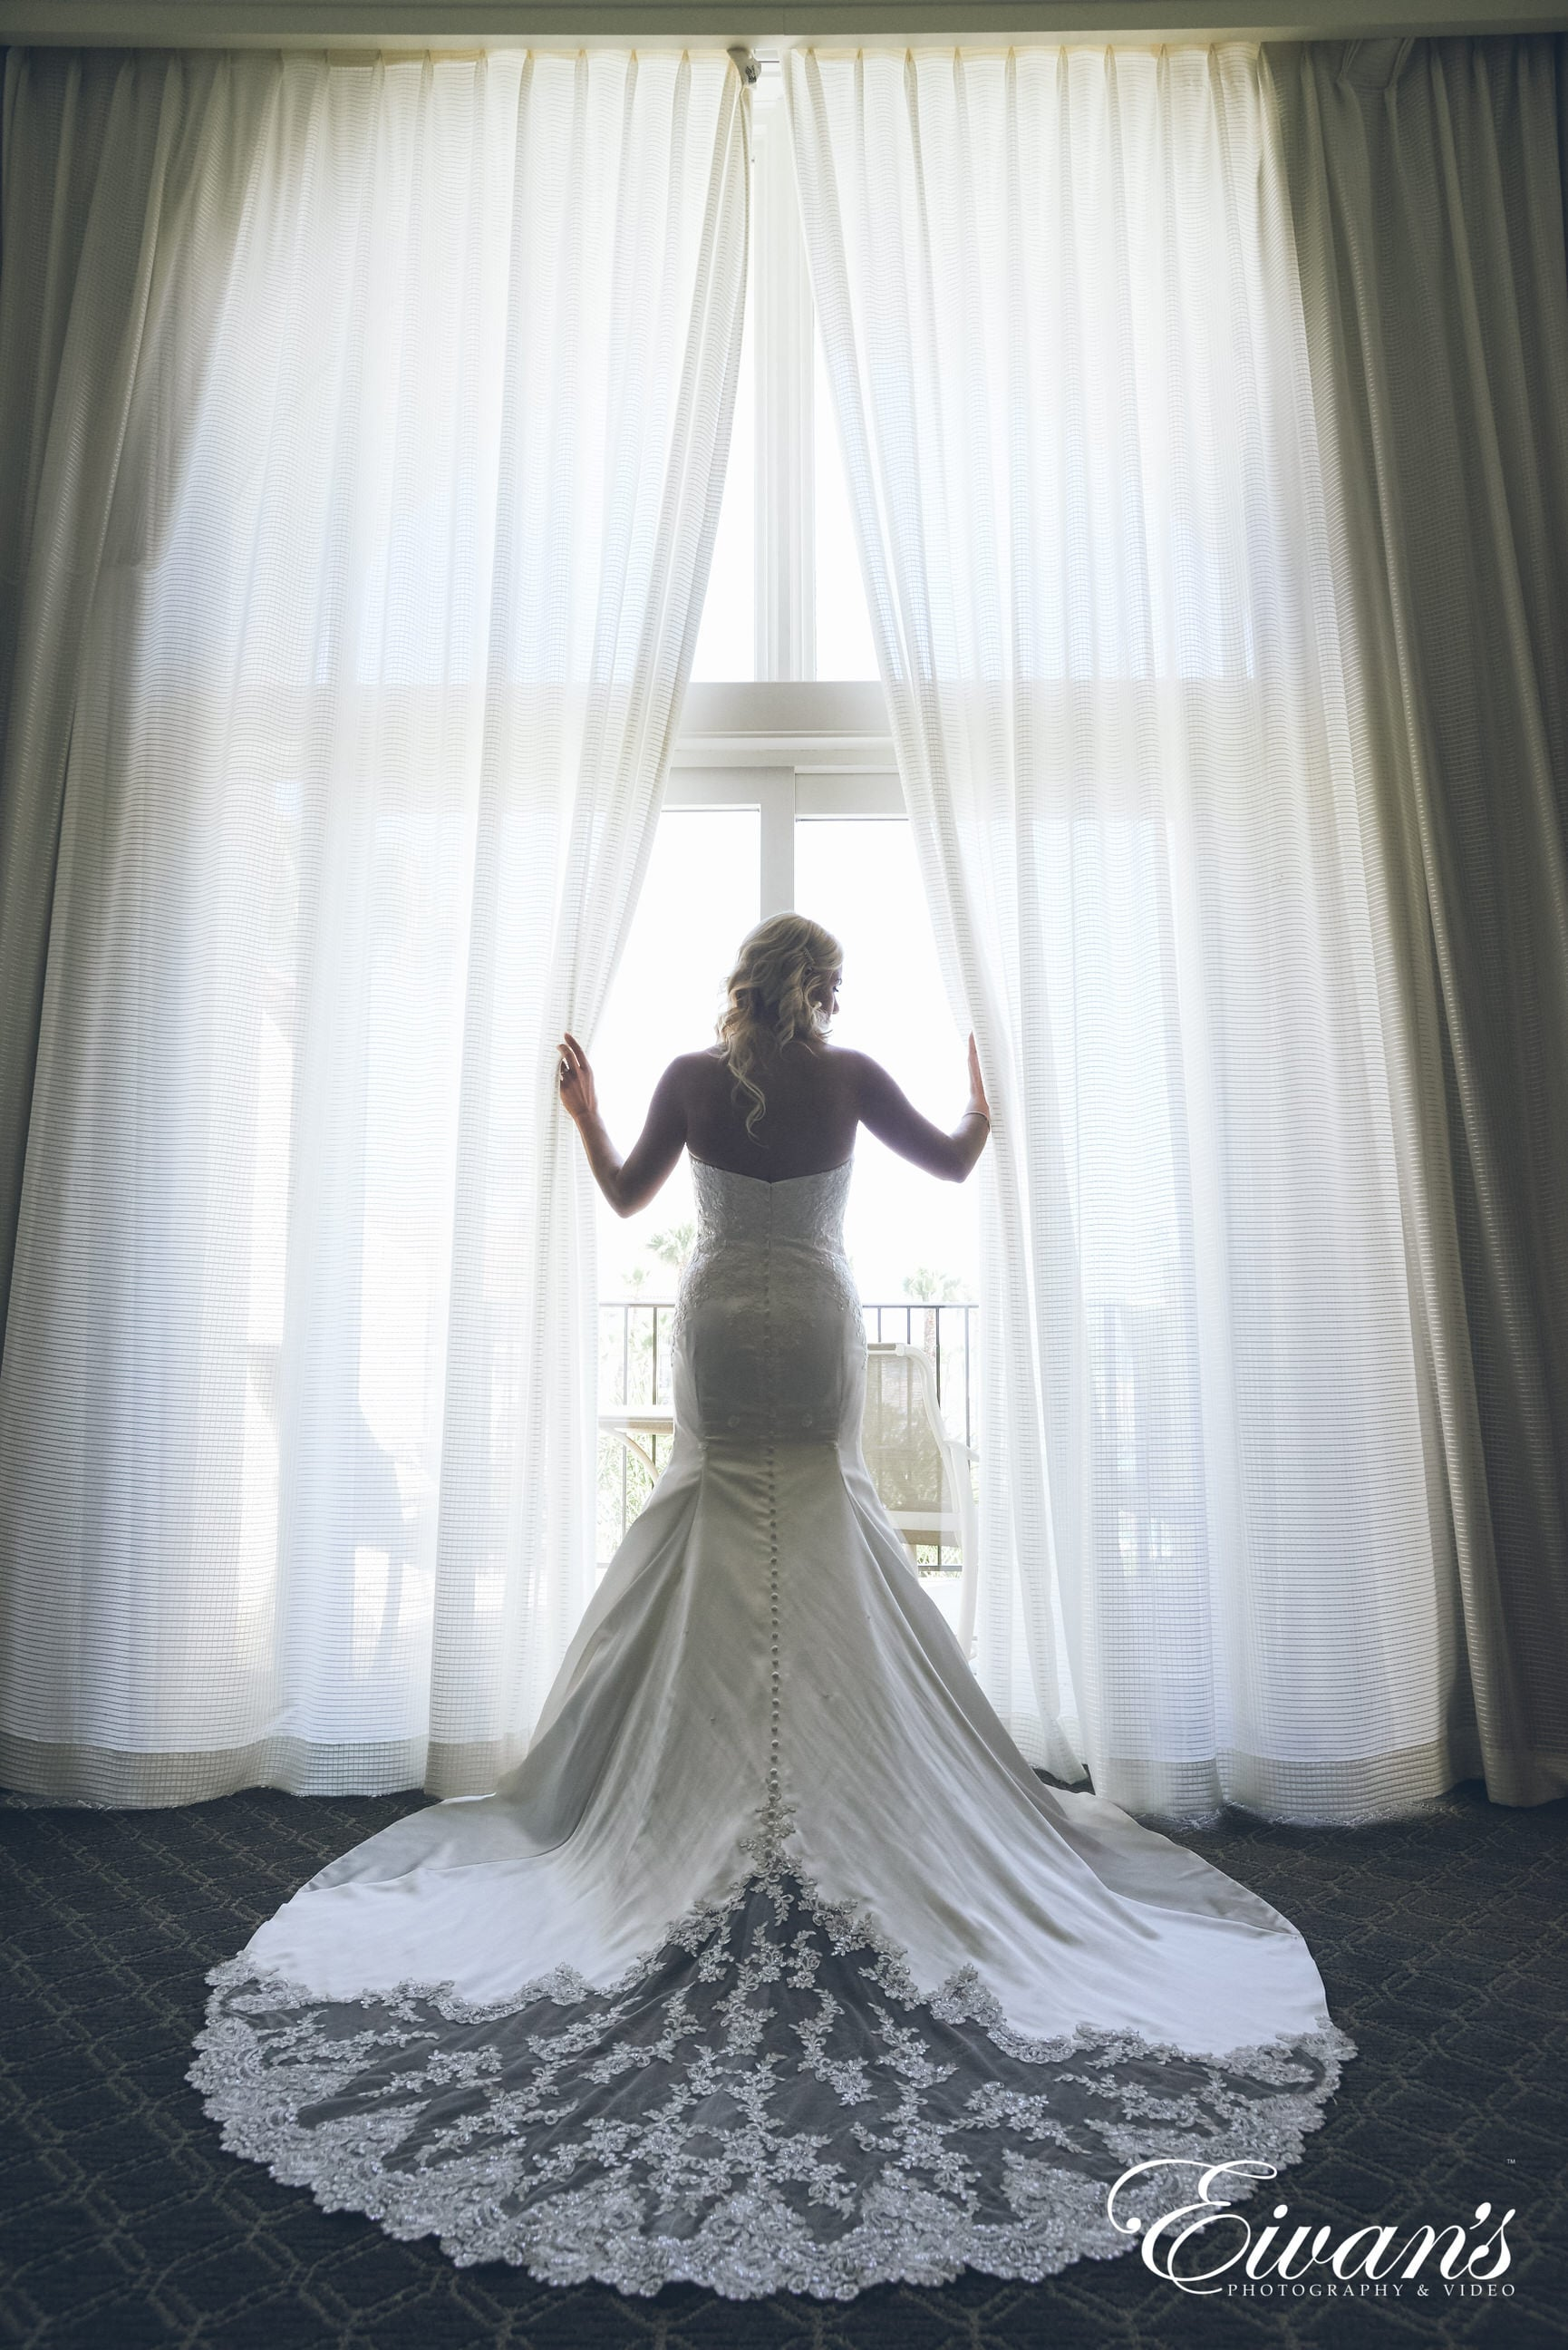 woman in white wedding dress standing on white bed